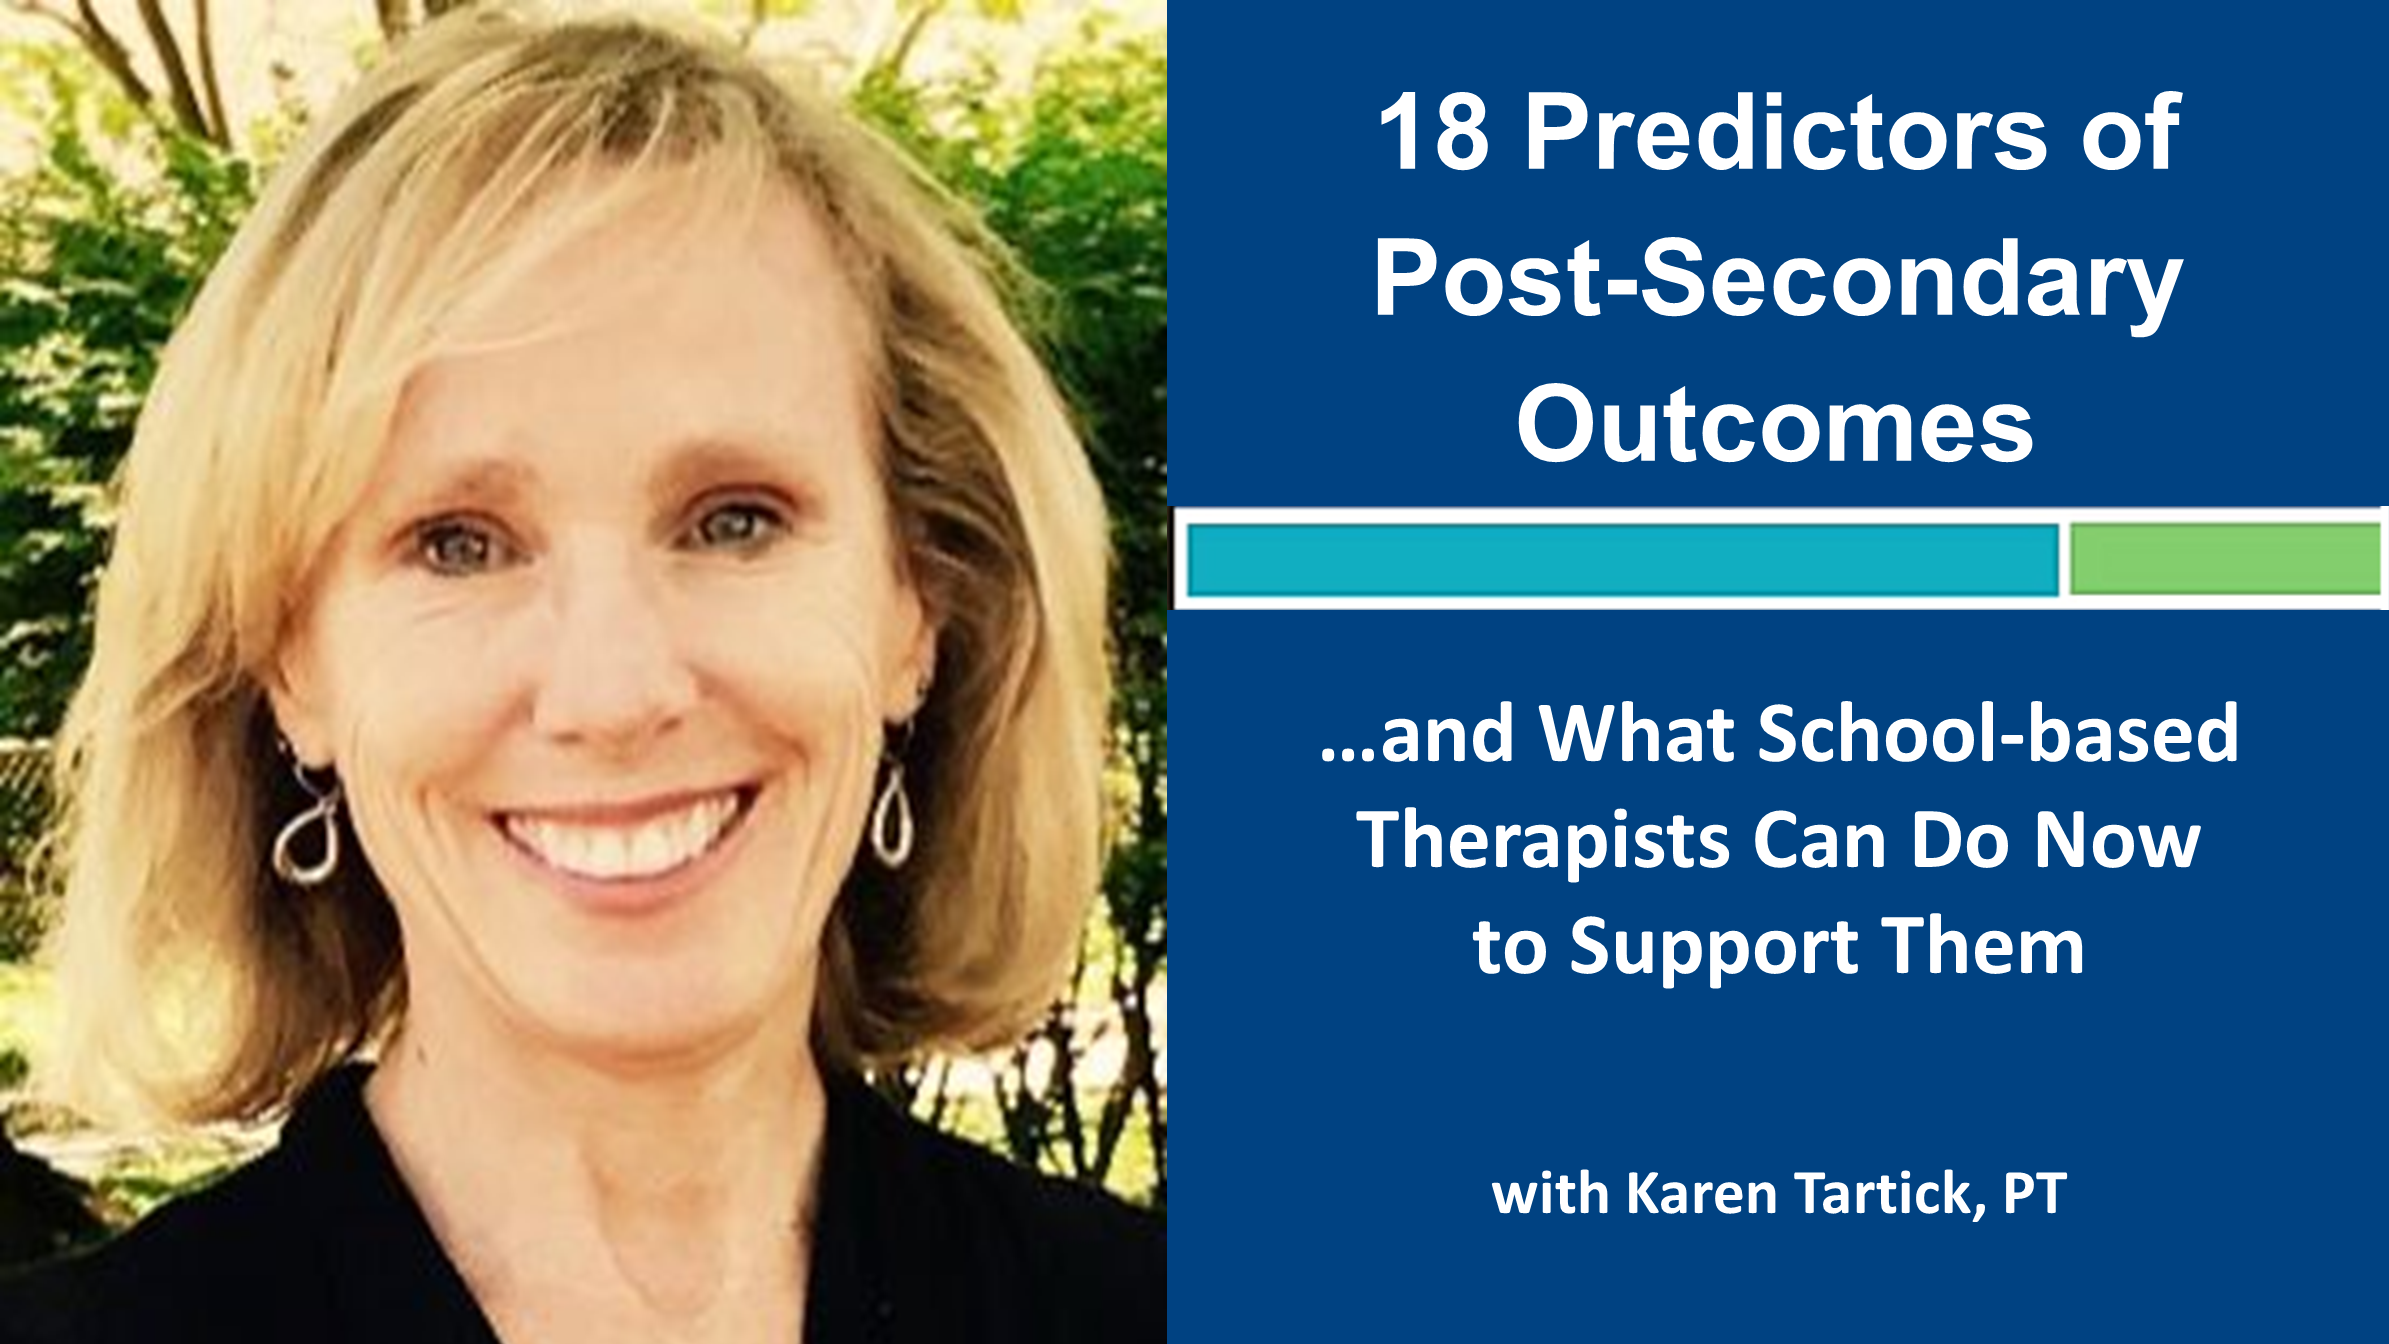 Webinar 8: 18 Predictors of Post-Secondary Outcomes...and What Therapists Can Do Now! with Karen Tartick, PT